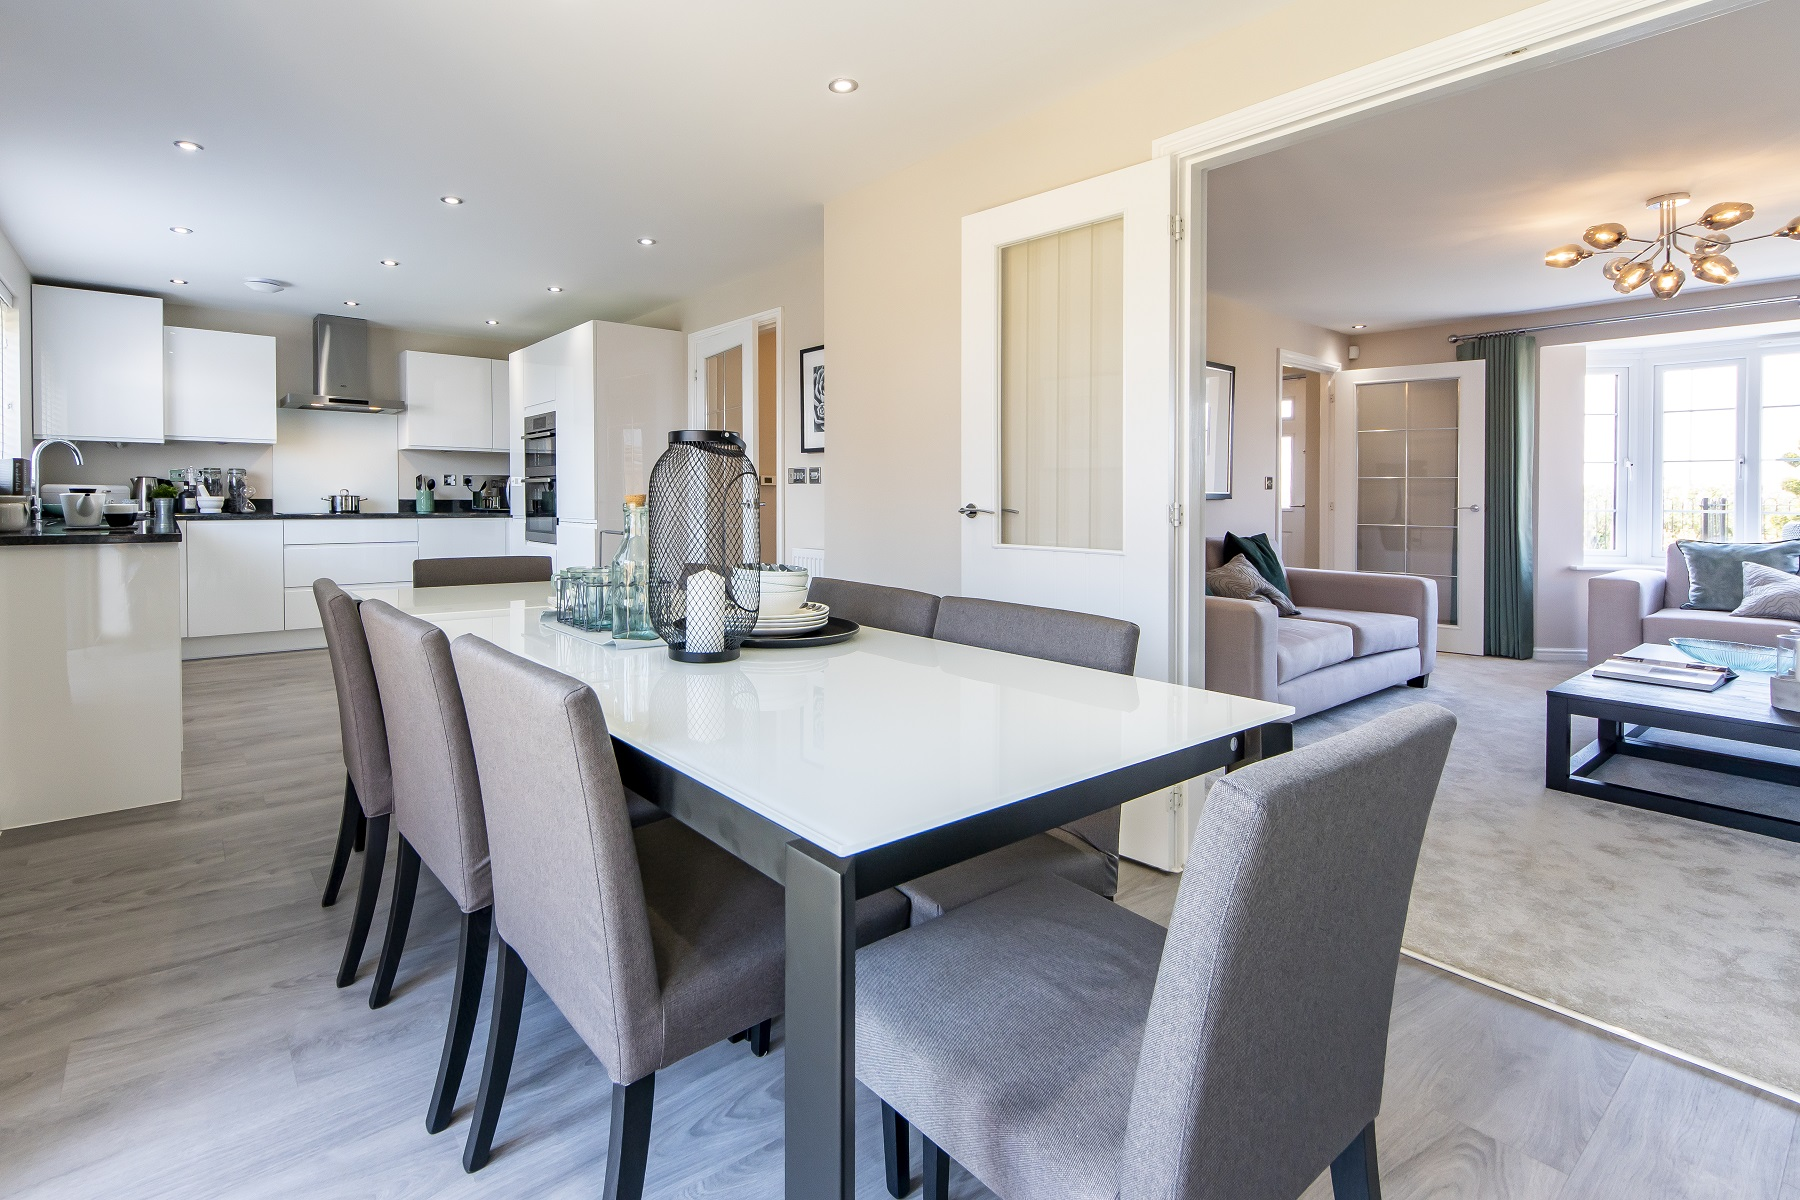 Kitchen diner Shelford-4bedroom-showhome_10